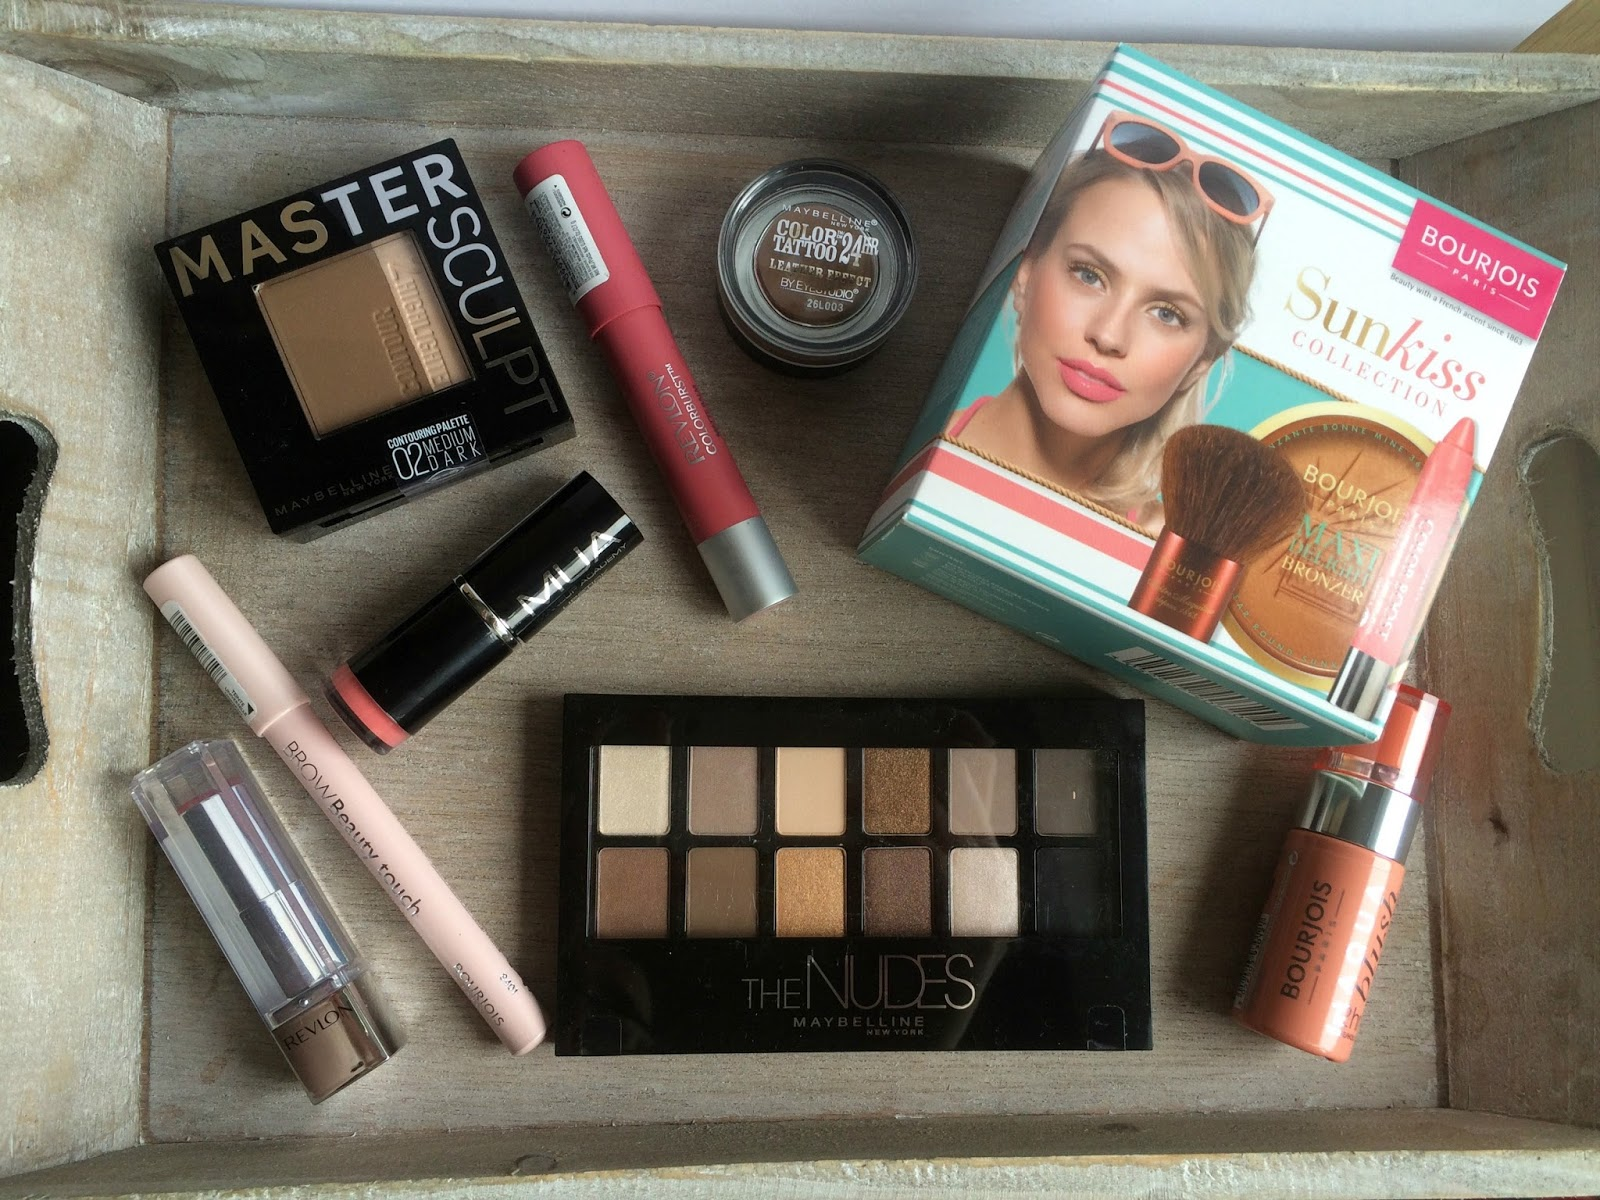 boots haul june 2015 bourjois maybelline revlon swatches